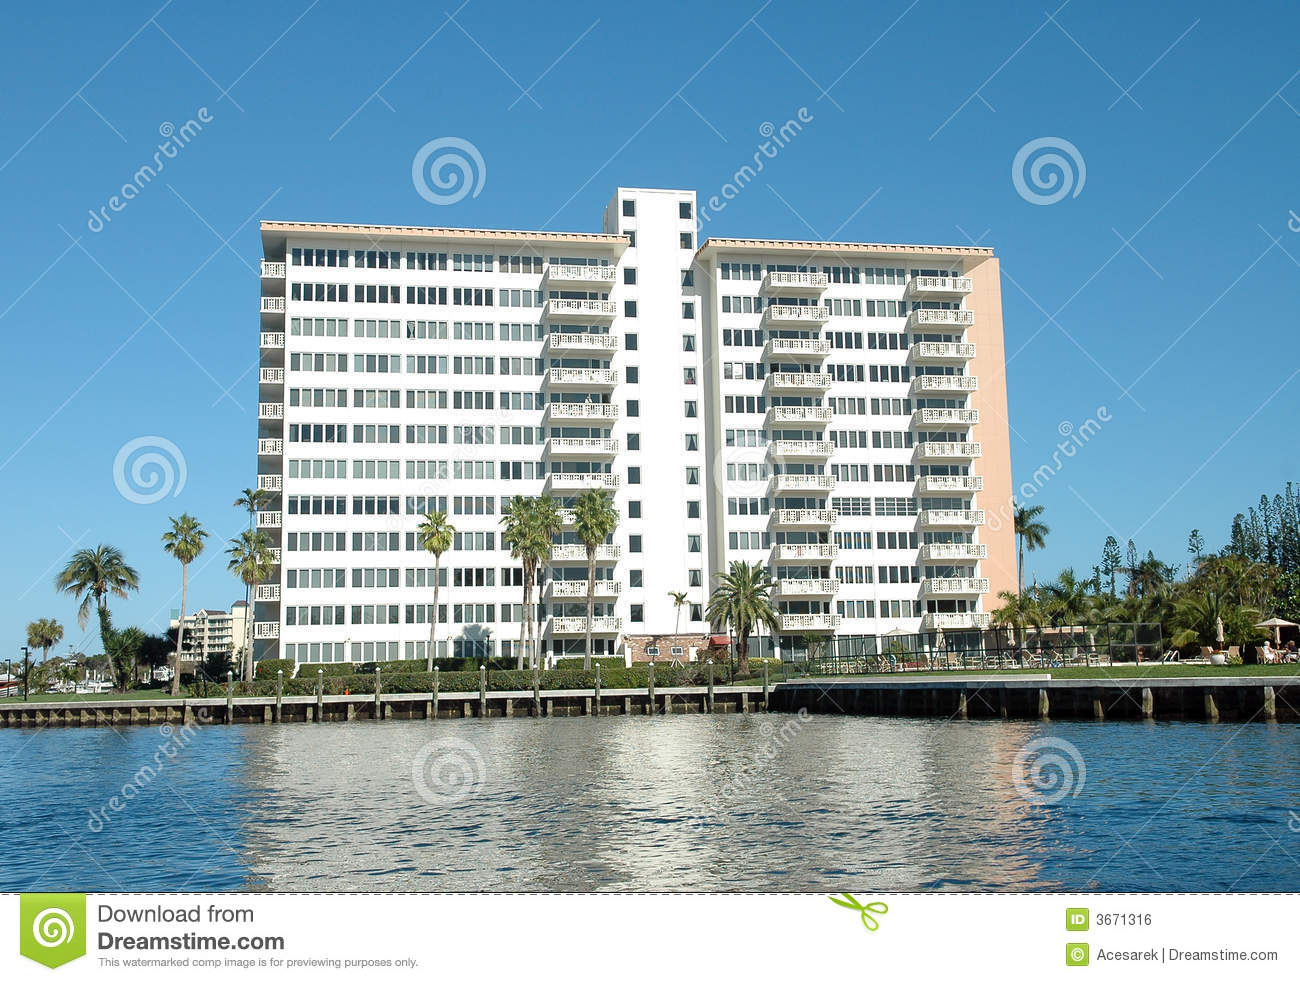 Apartment Building generic apartment building royalty free stock image - image: 3671316